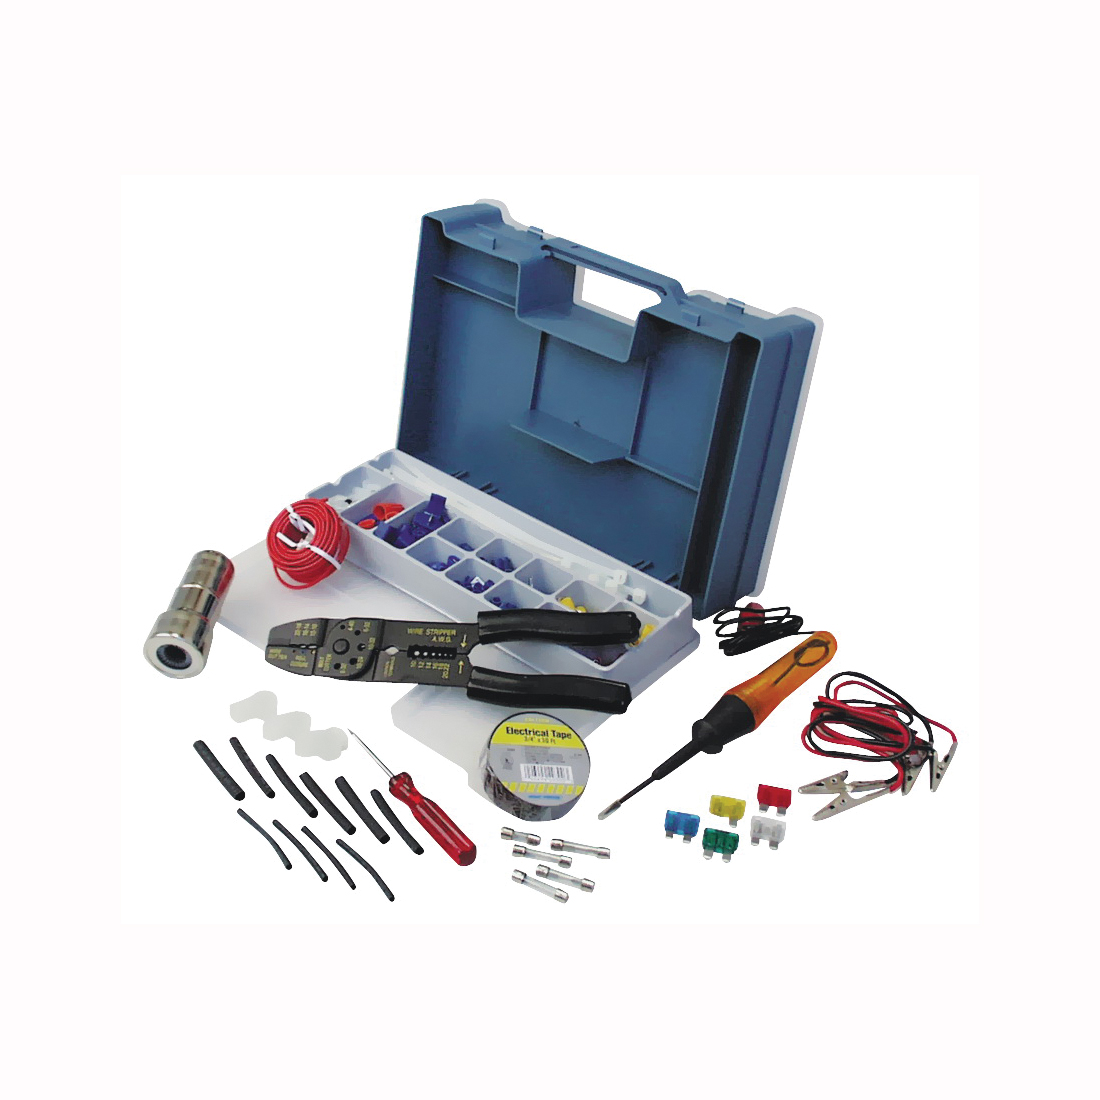 Picture of CALTERM 05207 Electrical Repair Kit, Automotive